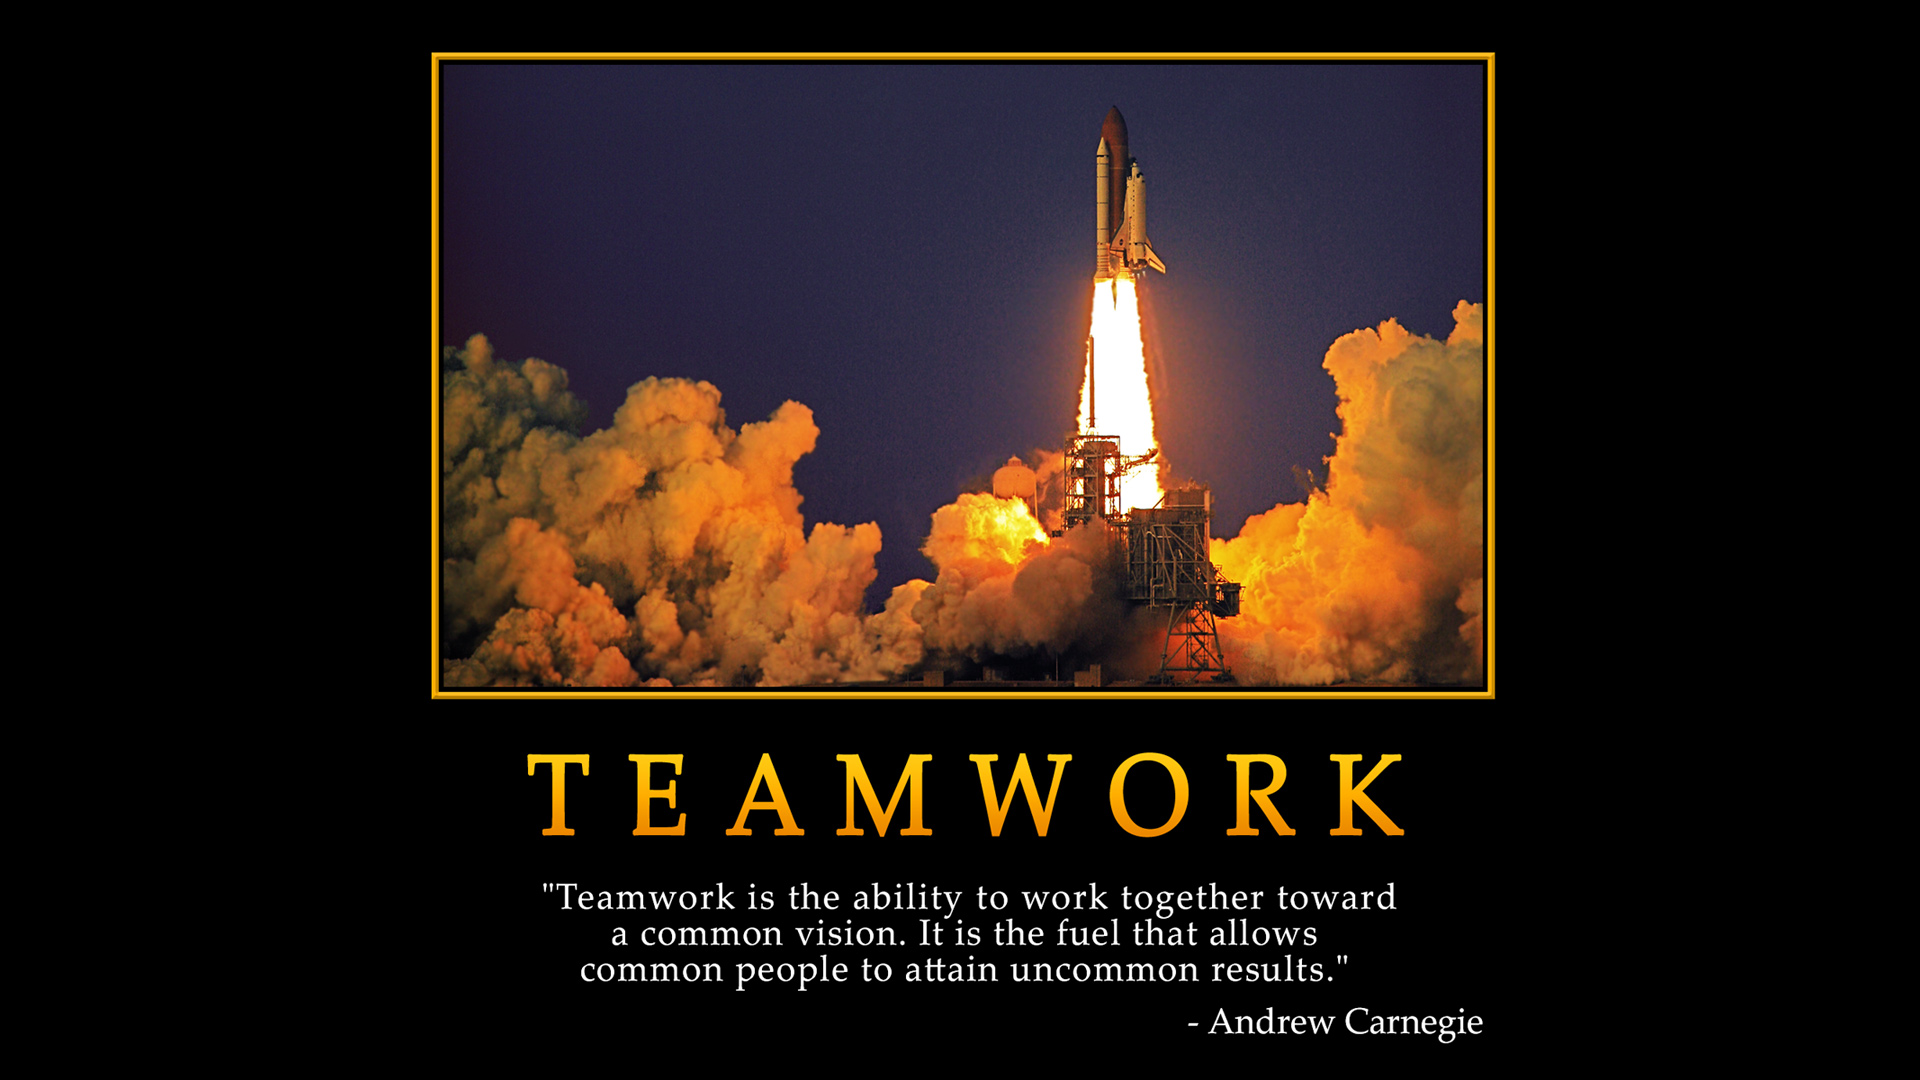 Teamwork Quotes Teamwork Quotes Pictures And Teamwork Quotes Images  15